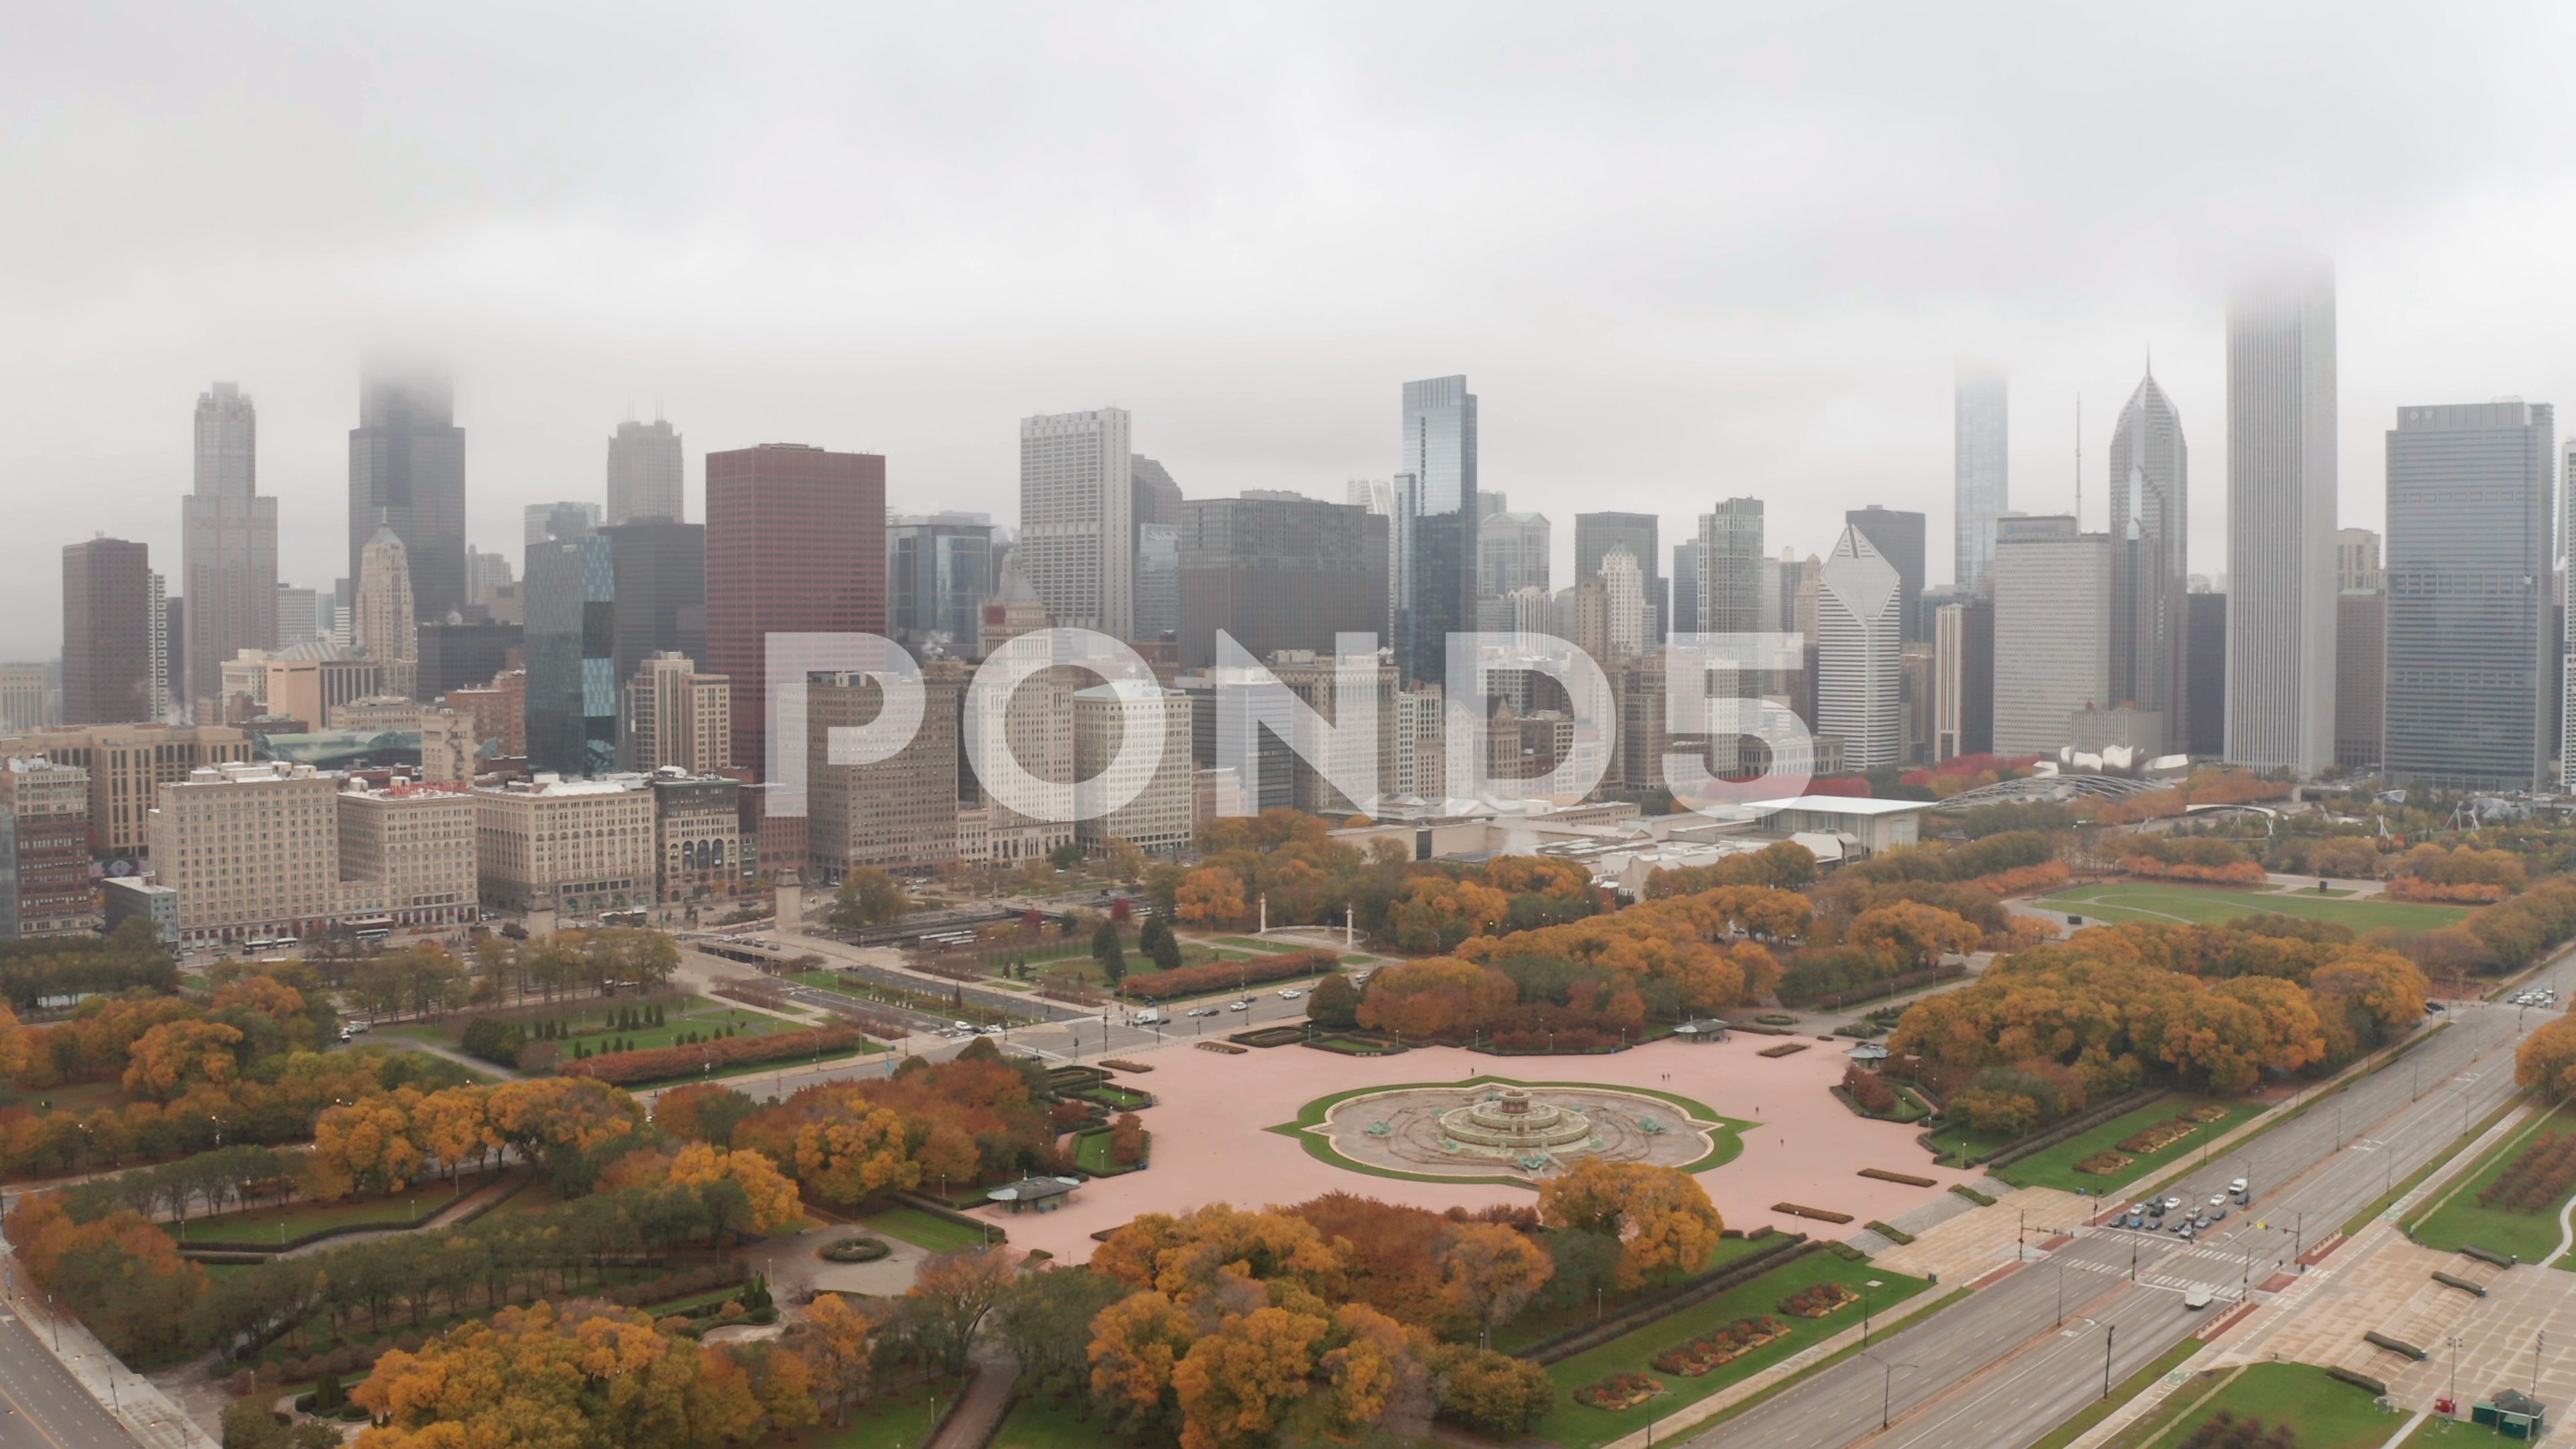 Chicago Downtown Aerial Fall Autumn Foliage Buildings Drone Flying Skyline Stock Footage Ad Fall Autumn Foliage Chicago In 2020 Downtown Chicago Aerial Fall Foliage